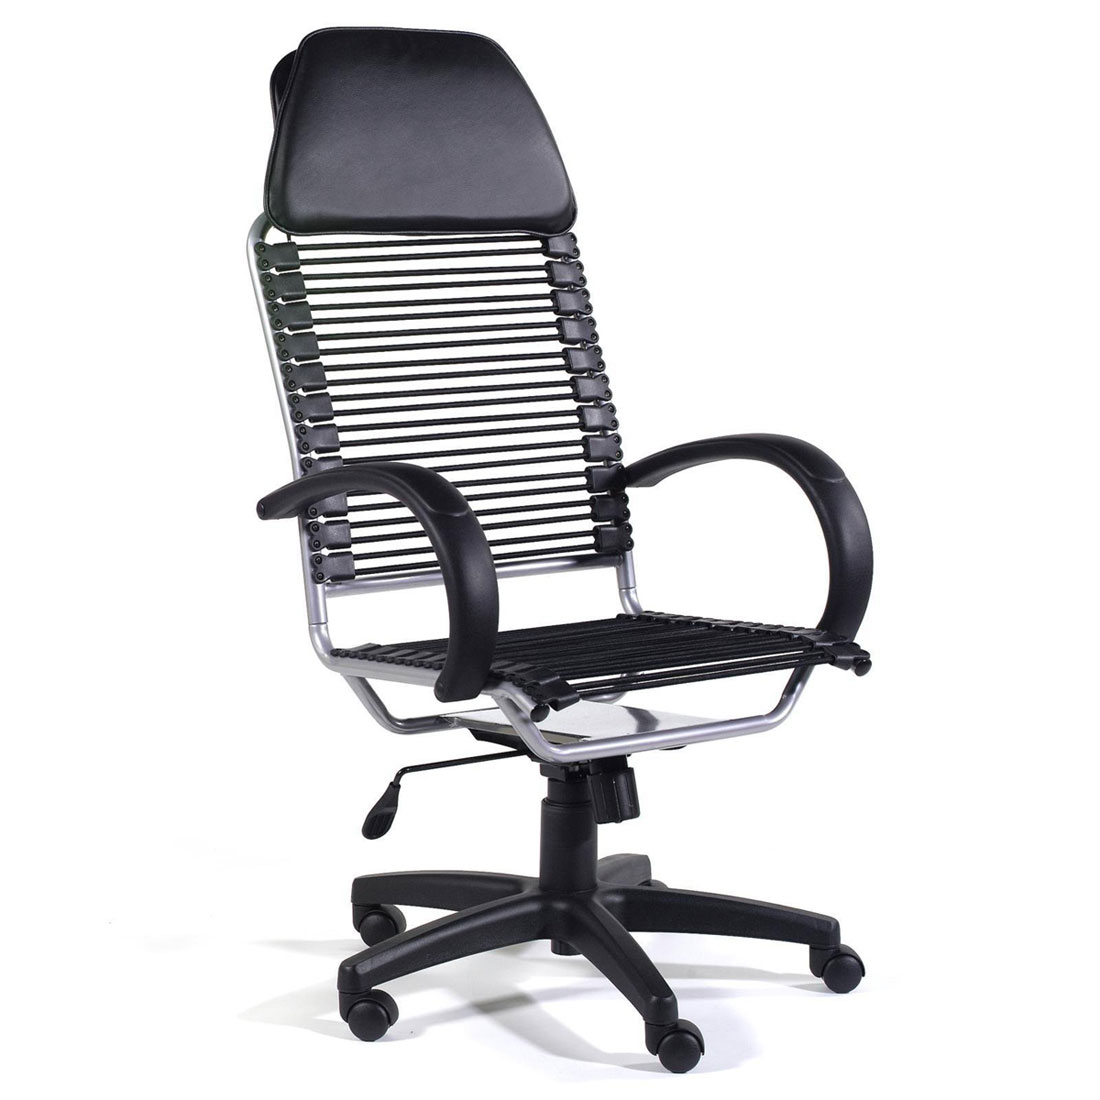 Ital Modern Beetle Black Modern Office Chair